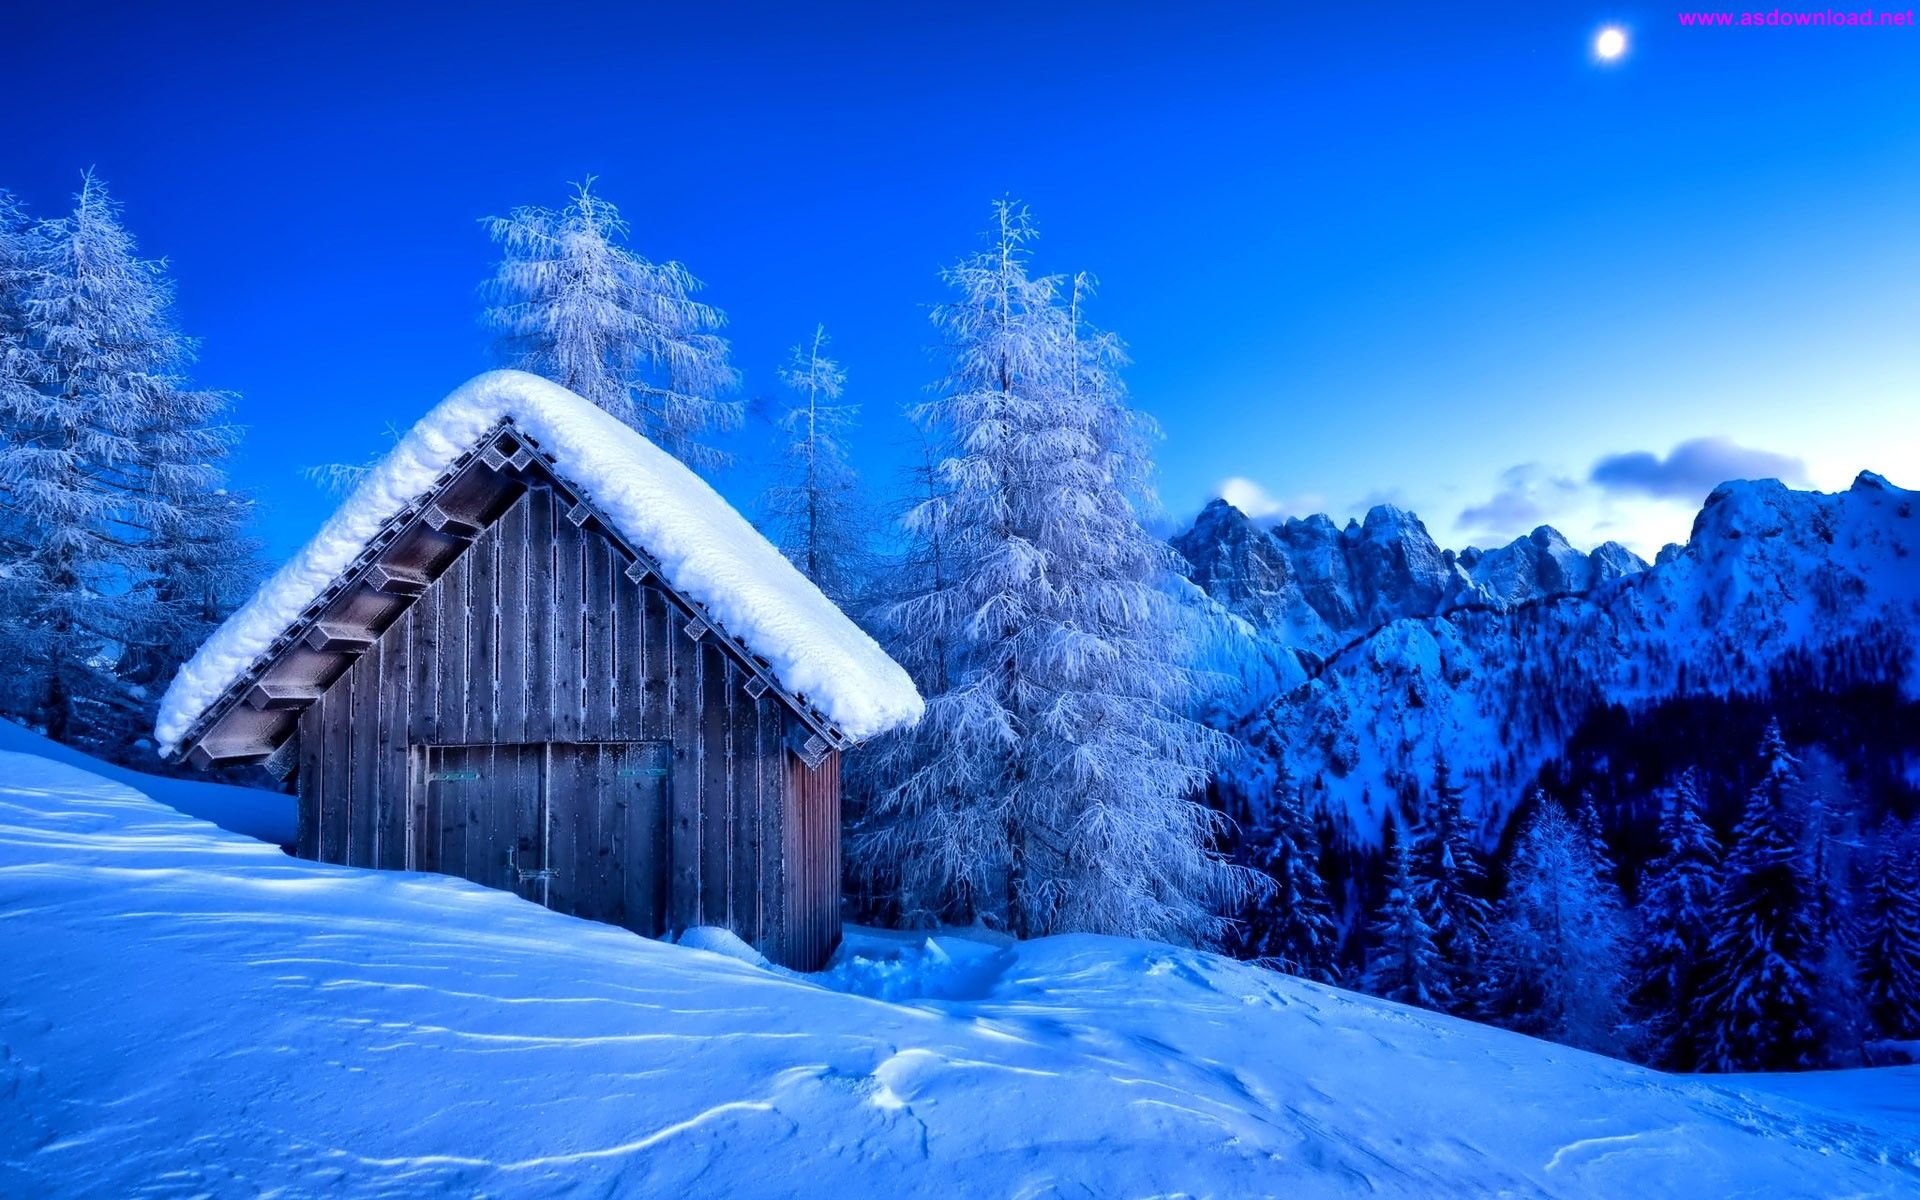 Winter Night Mountain Landscape HD Wallpaper 1920x1200 دانلود والپیپر جدید 2015